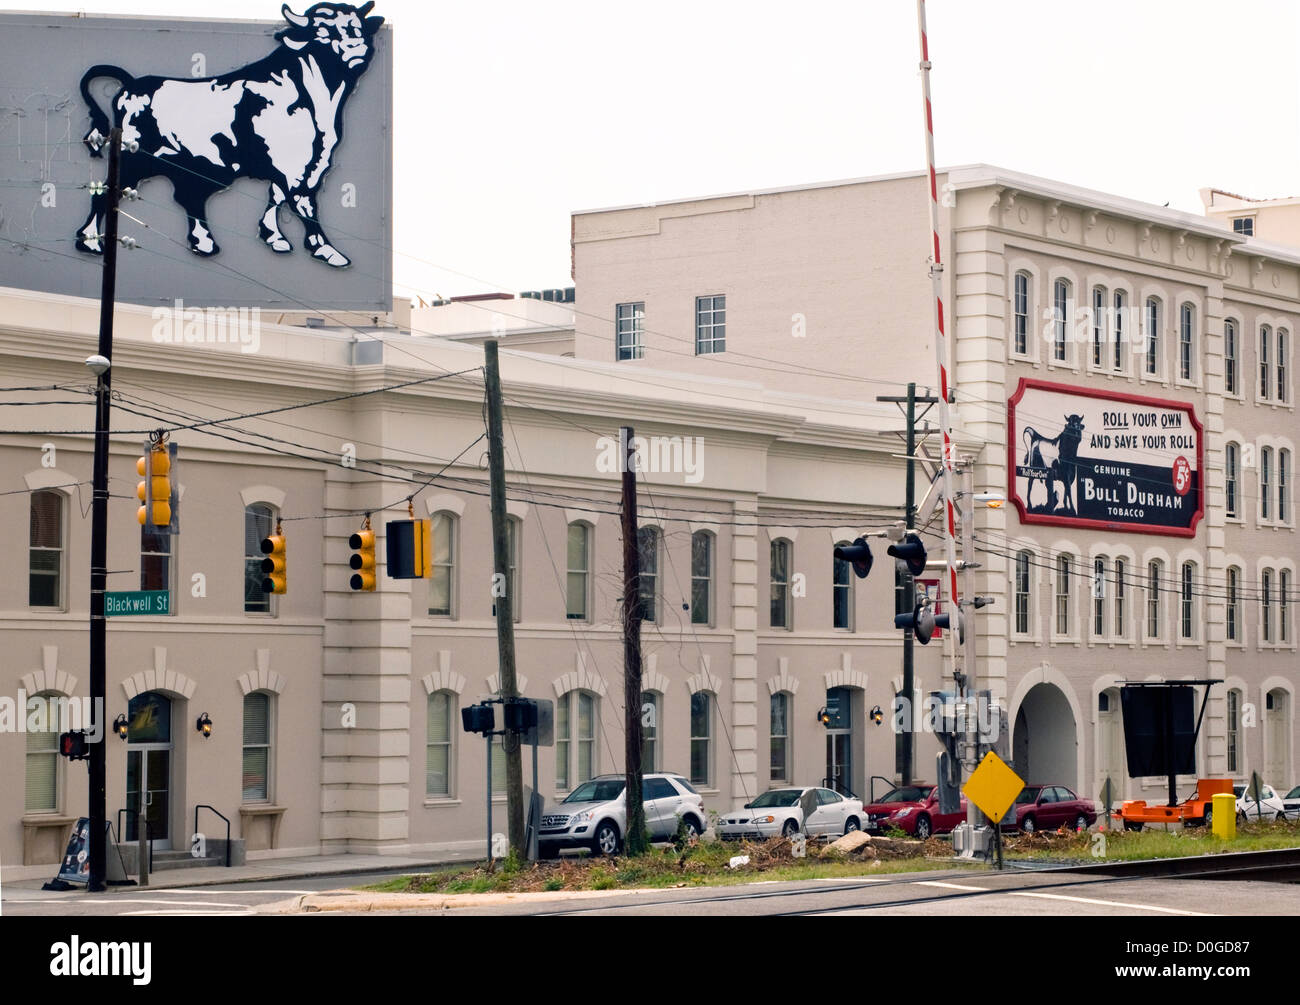 Bull Durham signs / billboards in Durham North Carolina - Stock Image